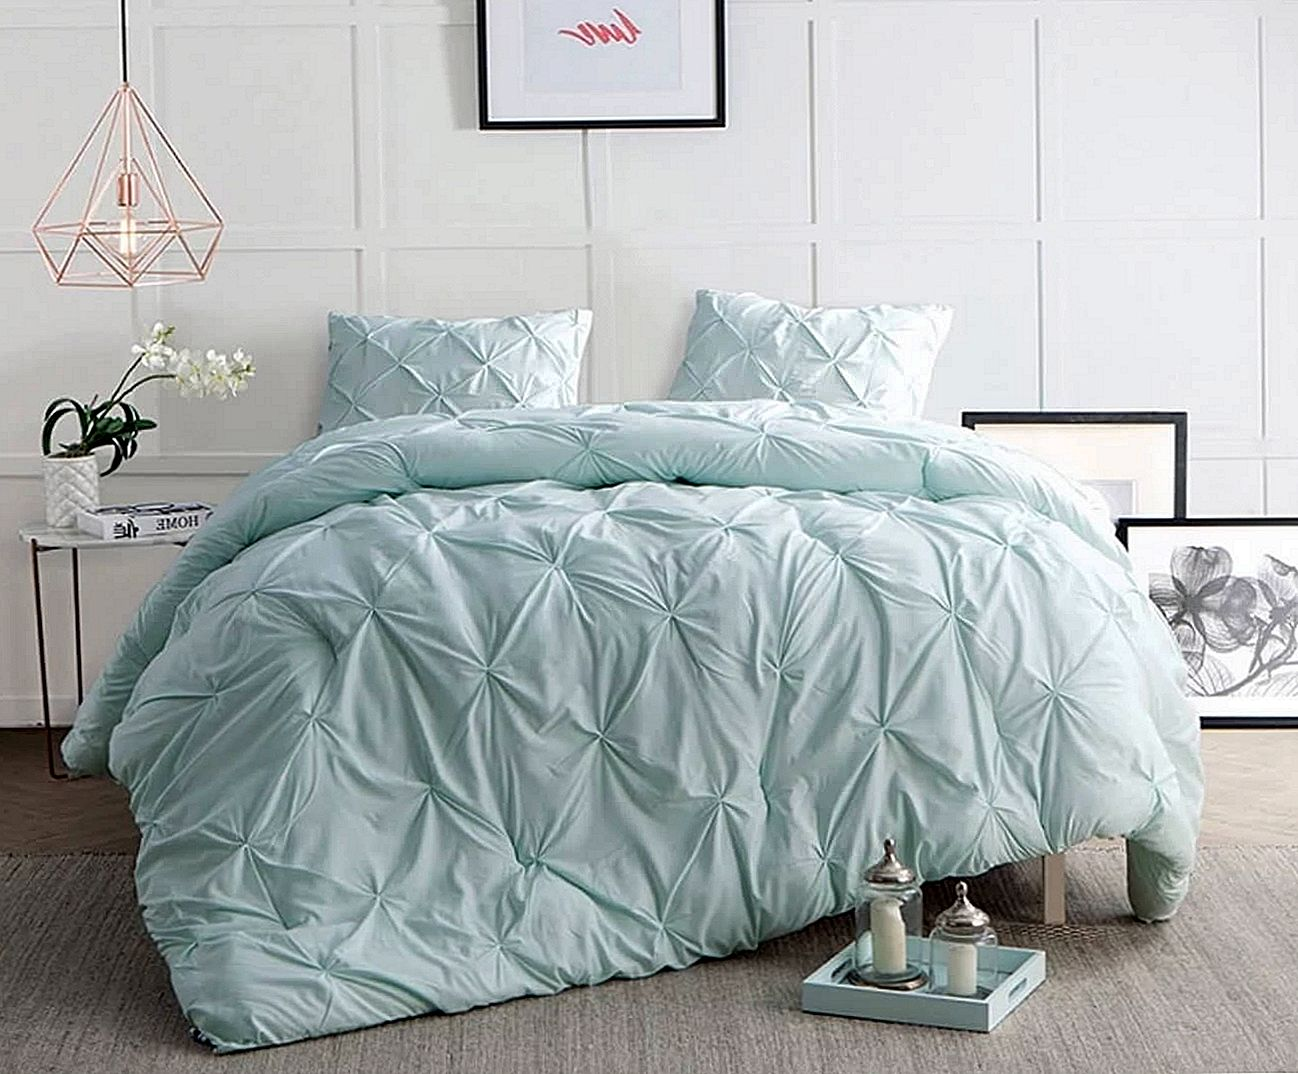 20 Awesome Dorm Room Bedding ideid inspiratsiooni